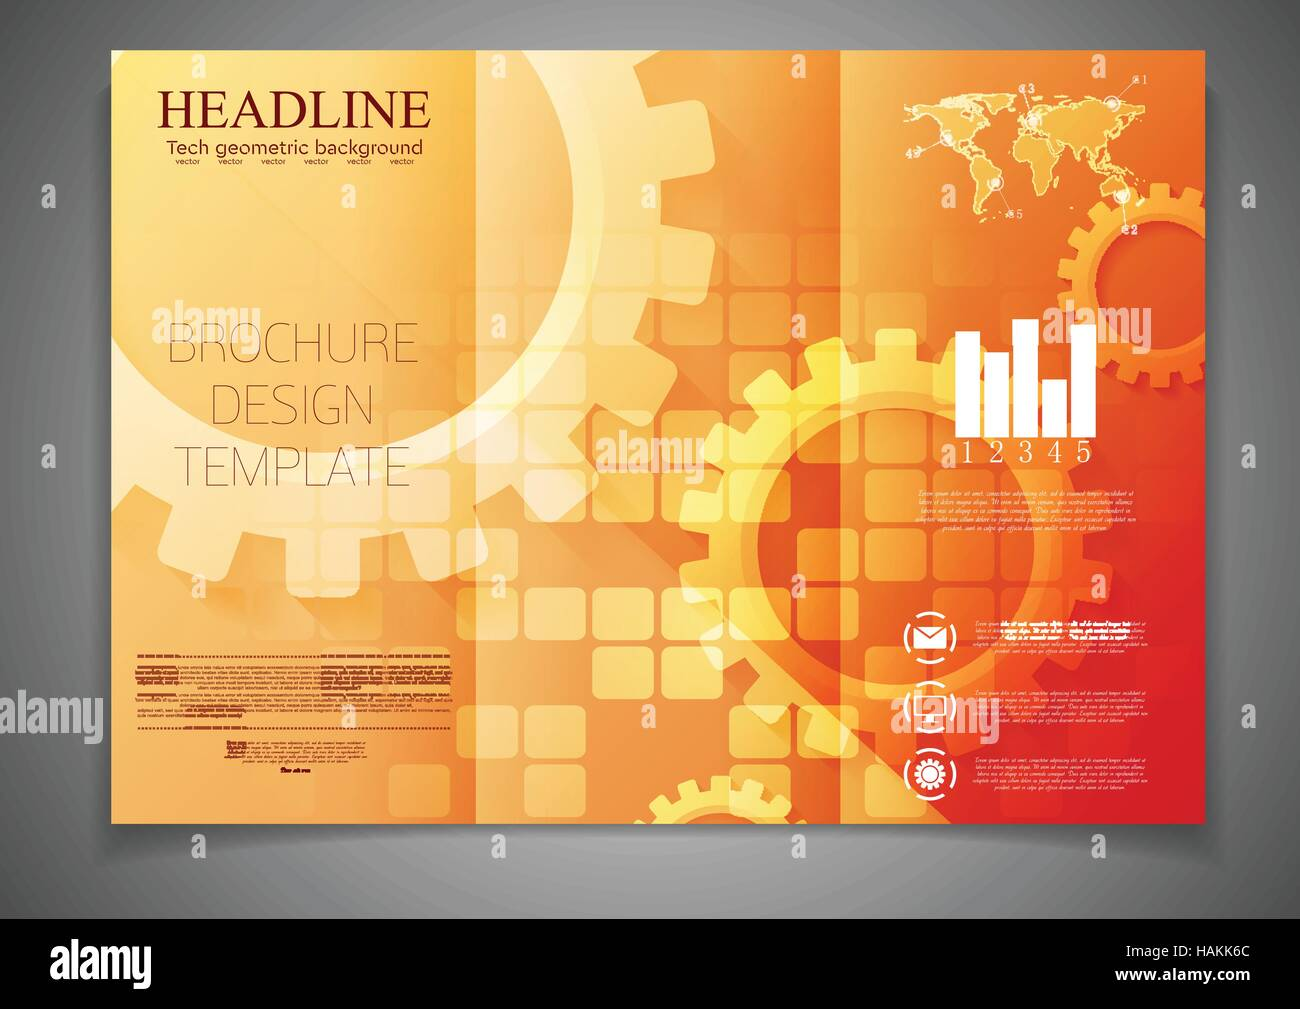 tri fold technology brochure design template with gears abstract